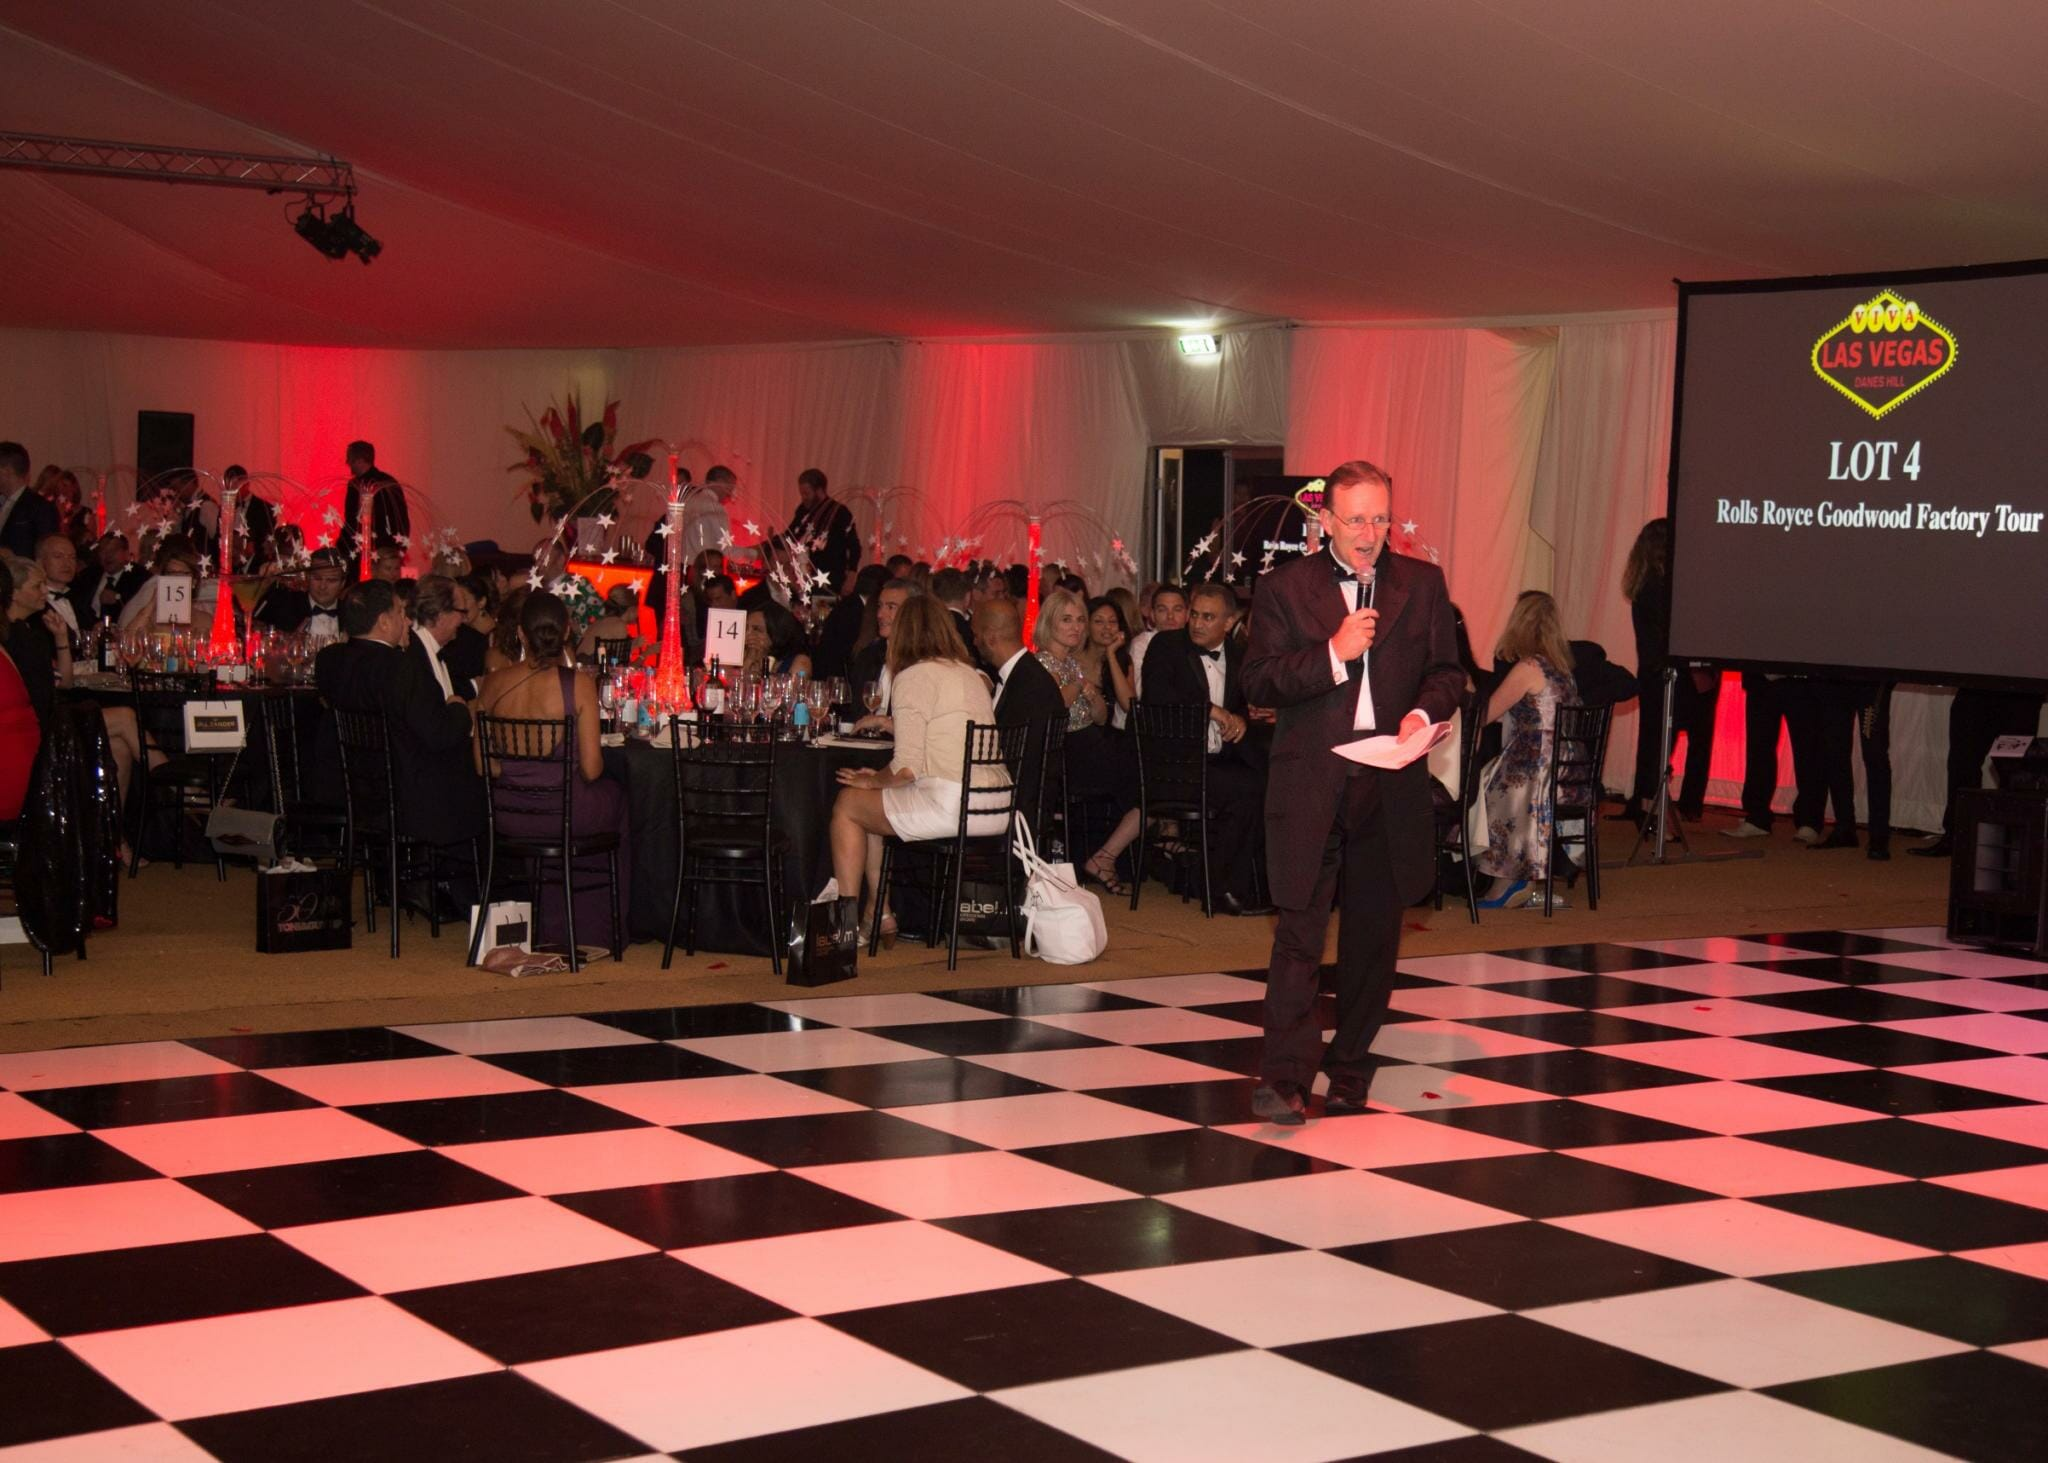 Buckinghamshire Fundraising and Charity Auctioneer oz make your next event get bigger and better